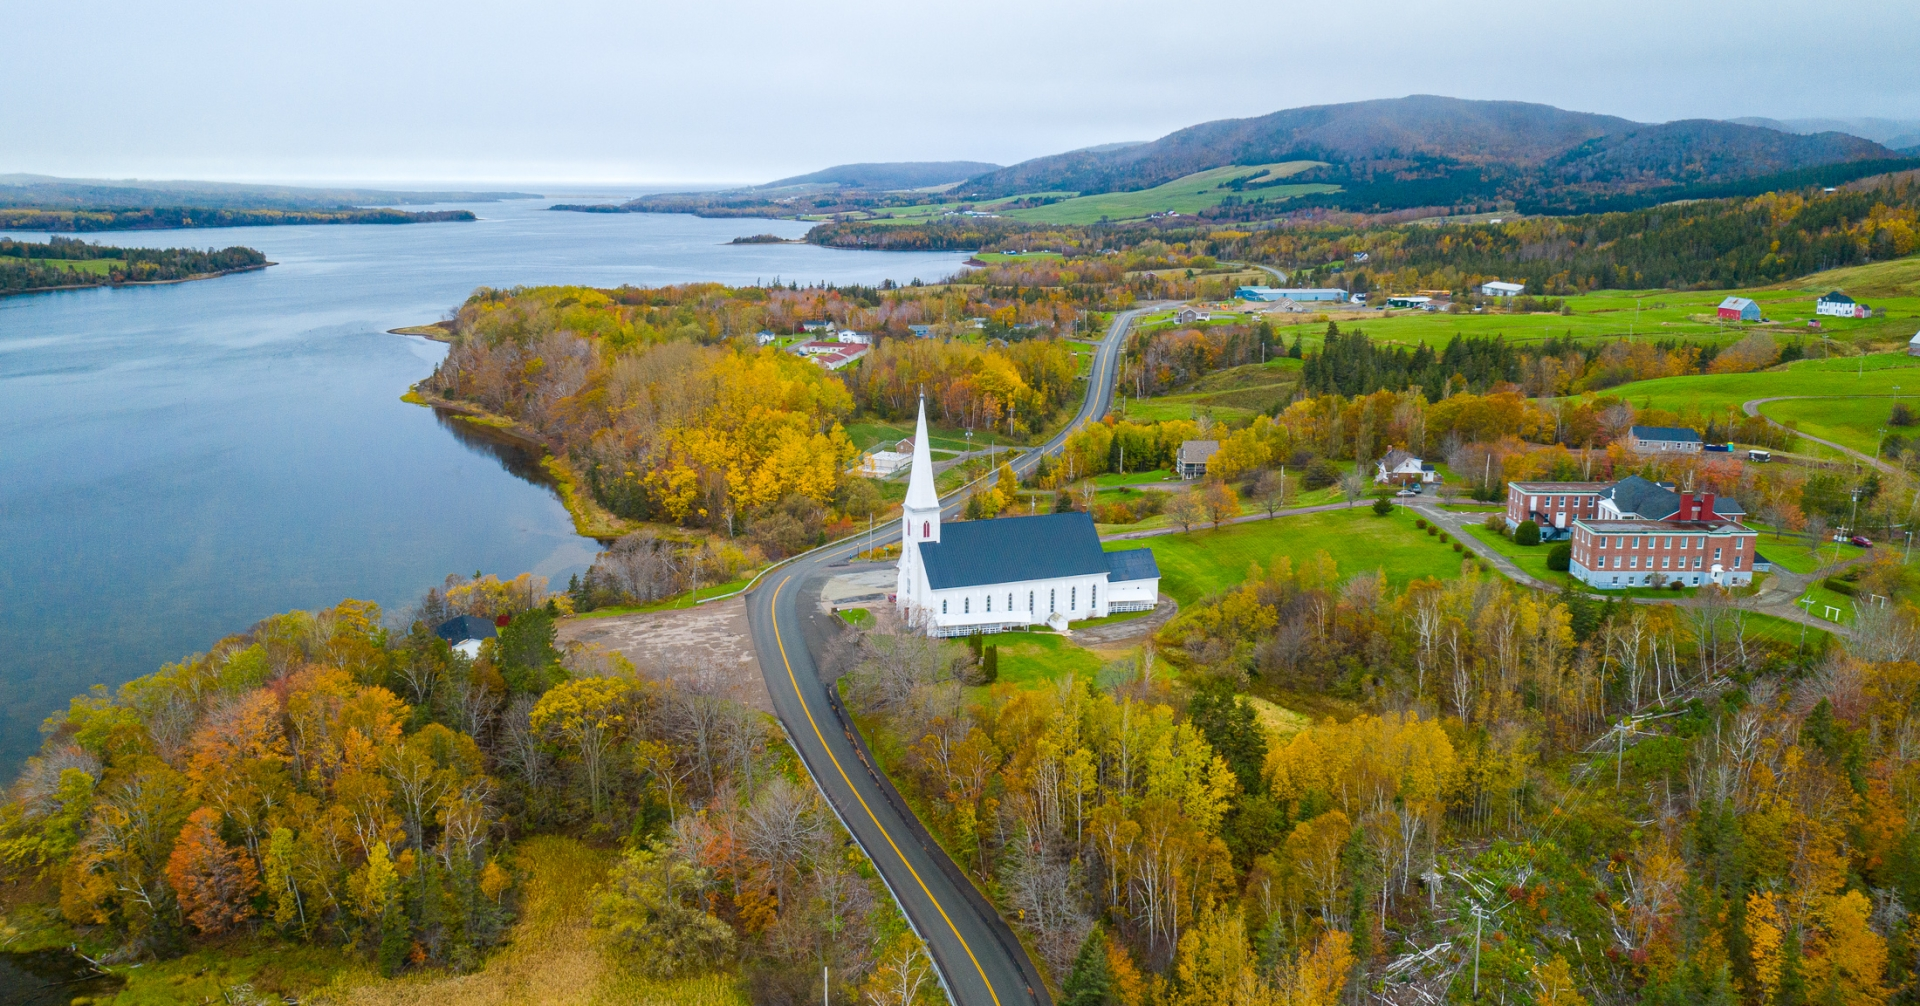 Mabou, My Home 5